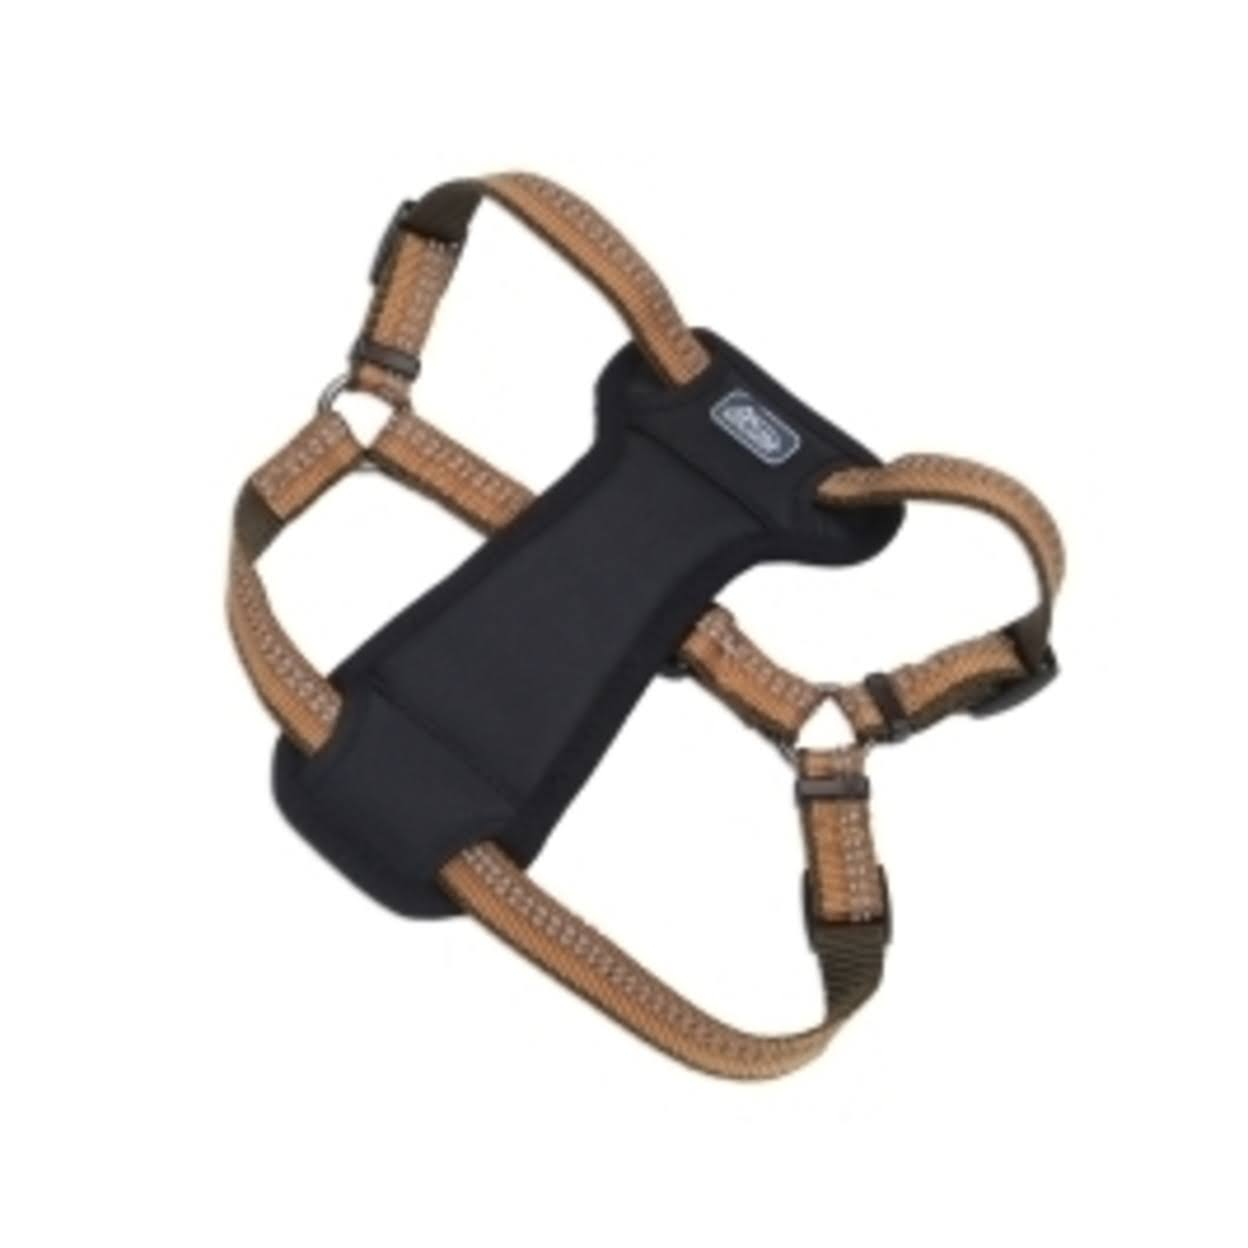 "Coastal K9 Explorer Padded Harness - 1"", Camp Fire Orange, 20-30"""